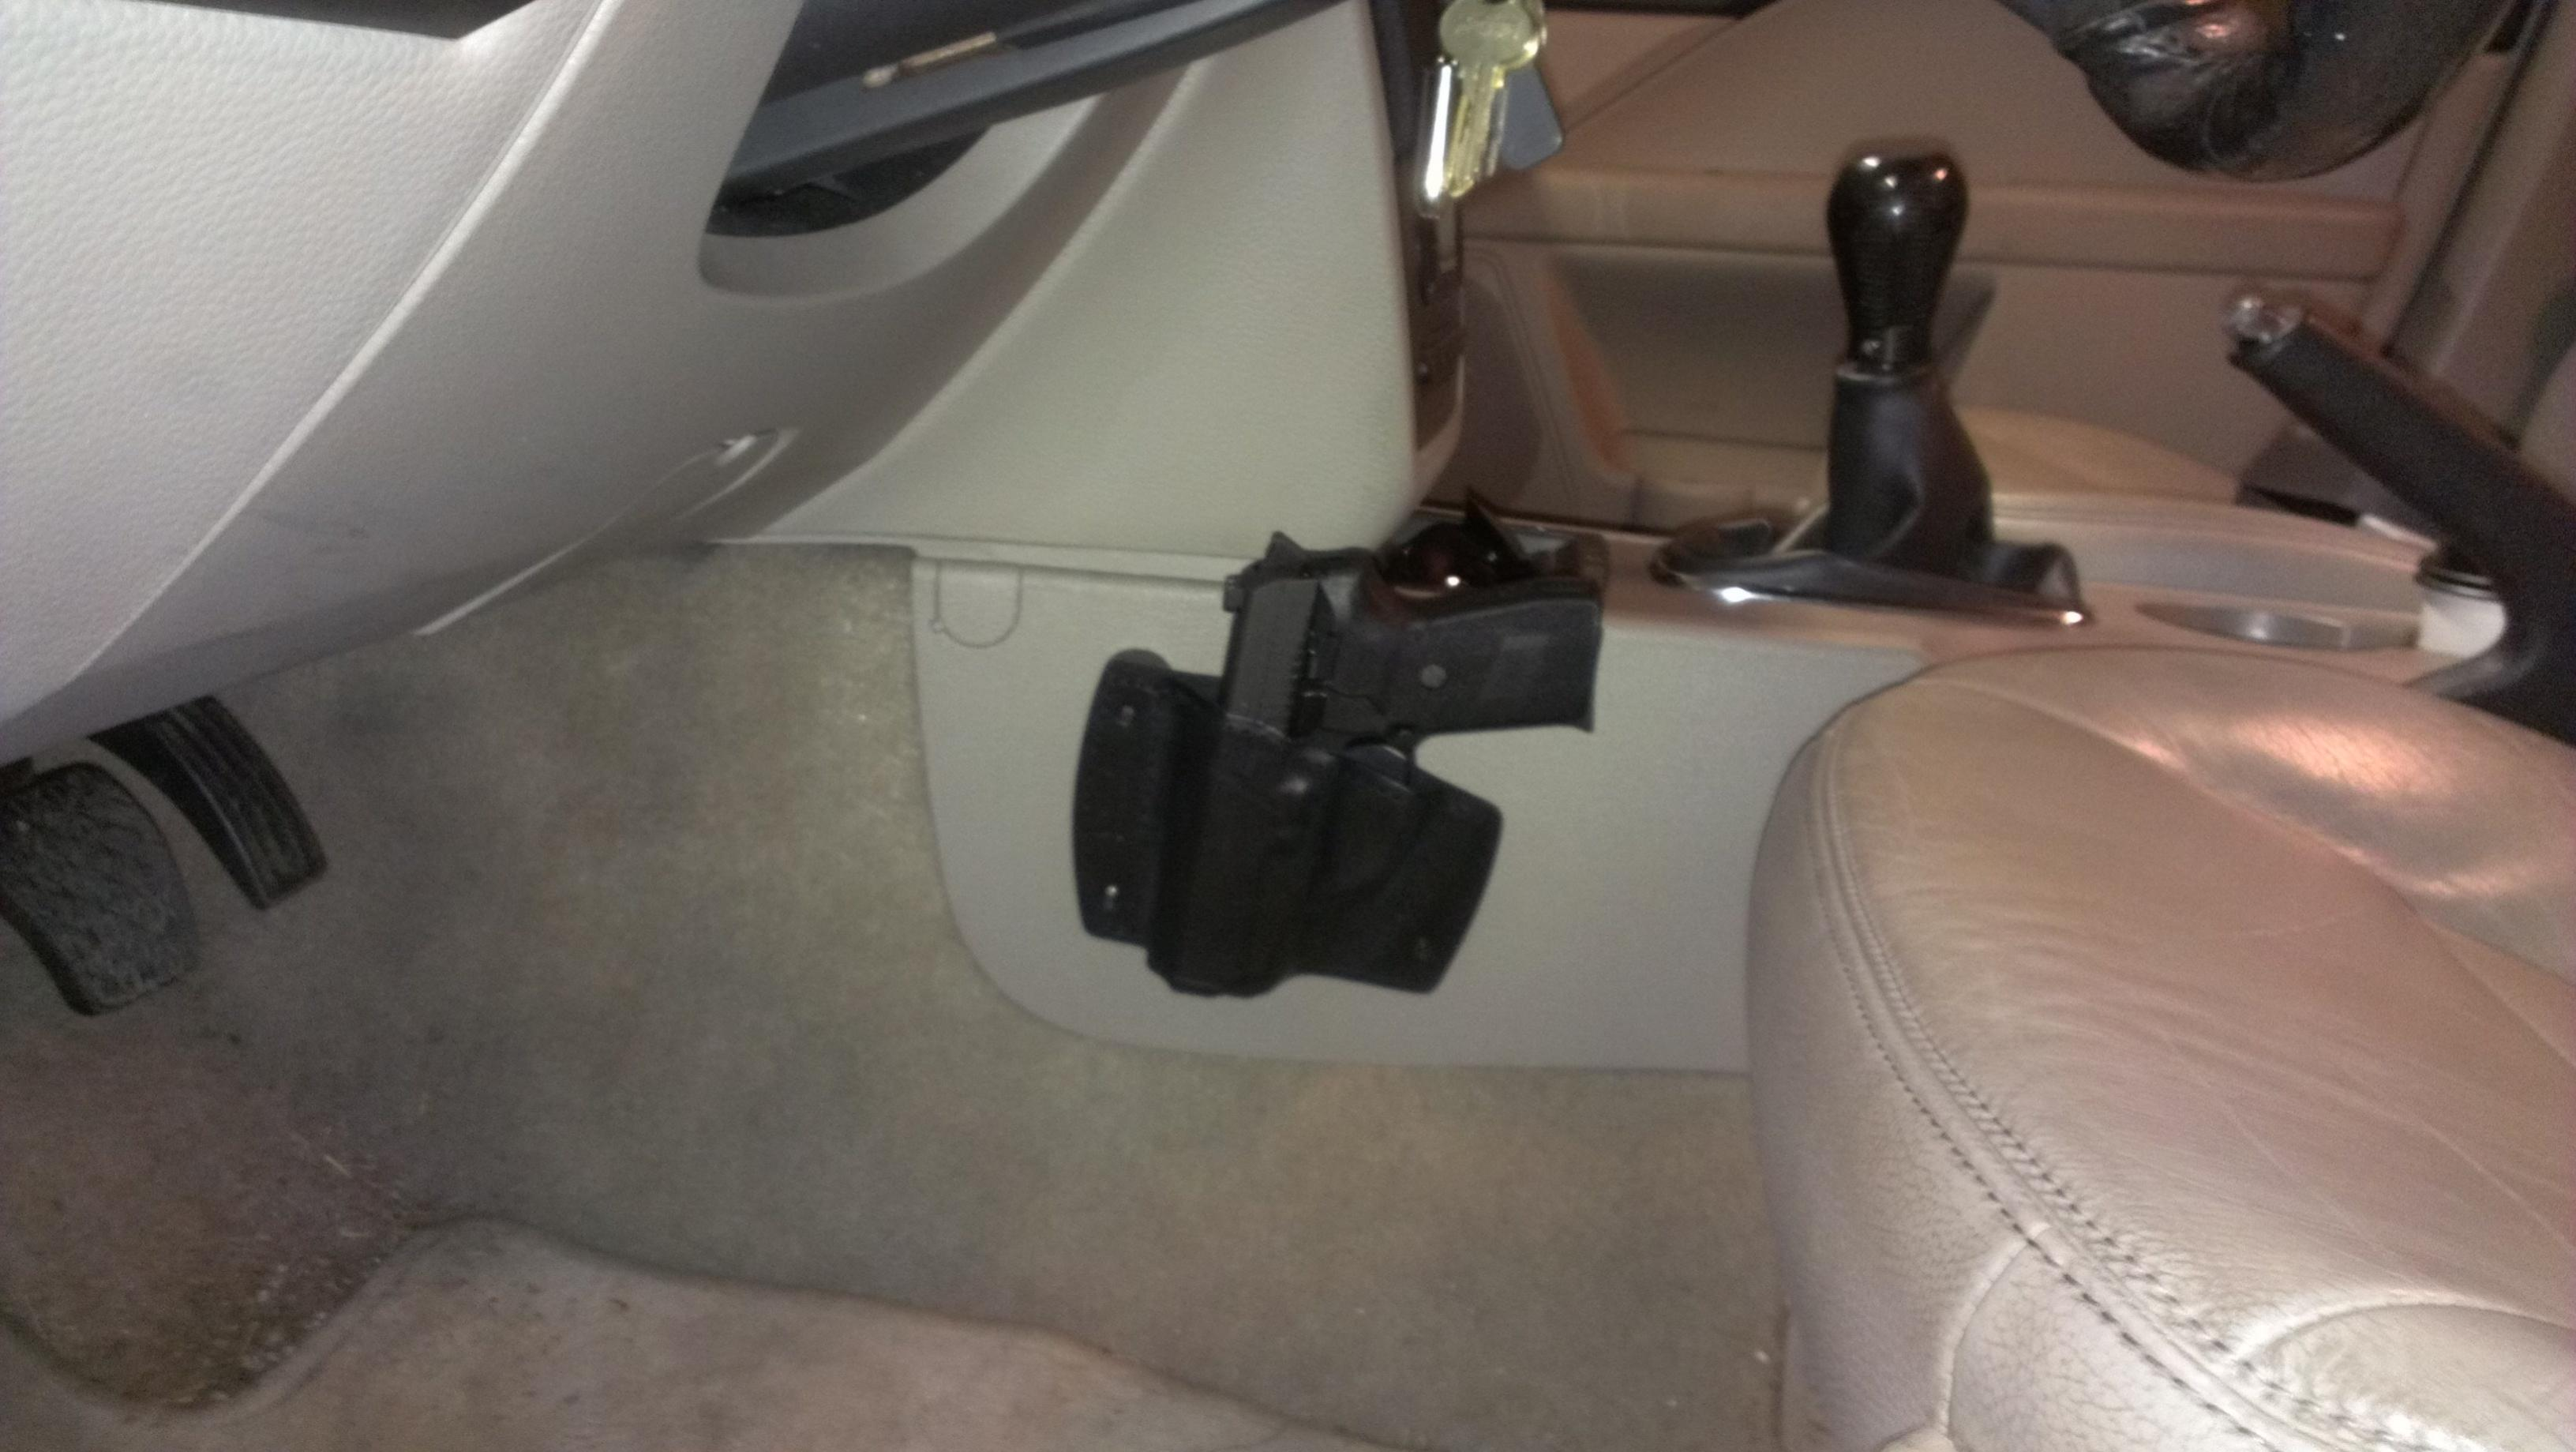 I bought this Holster for my car-106.jpg